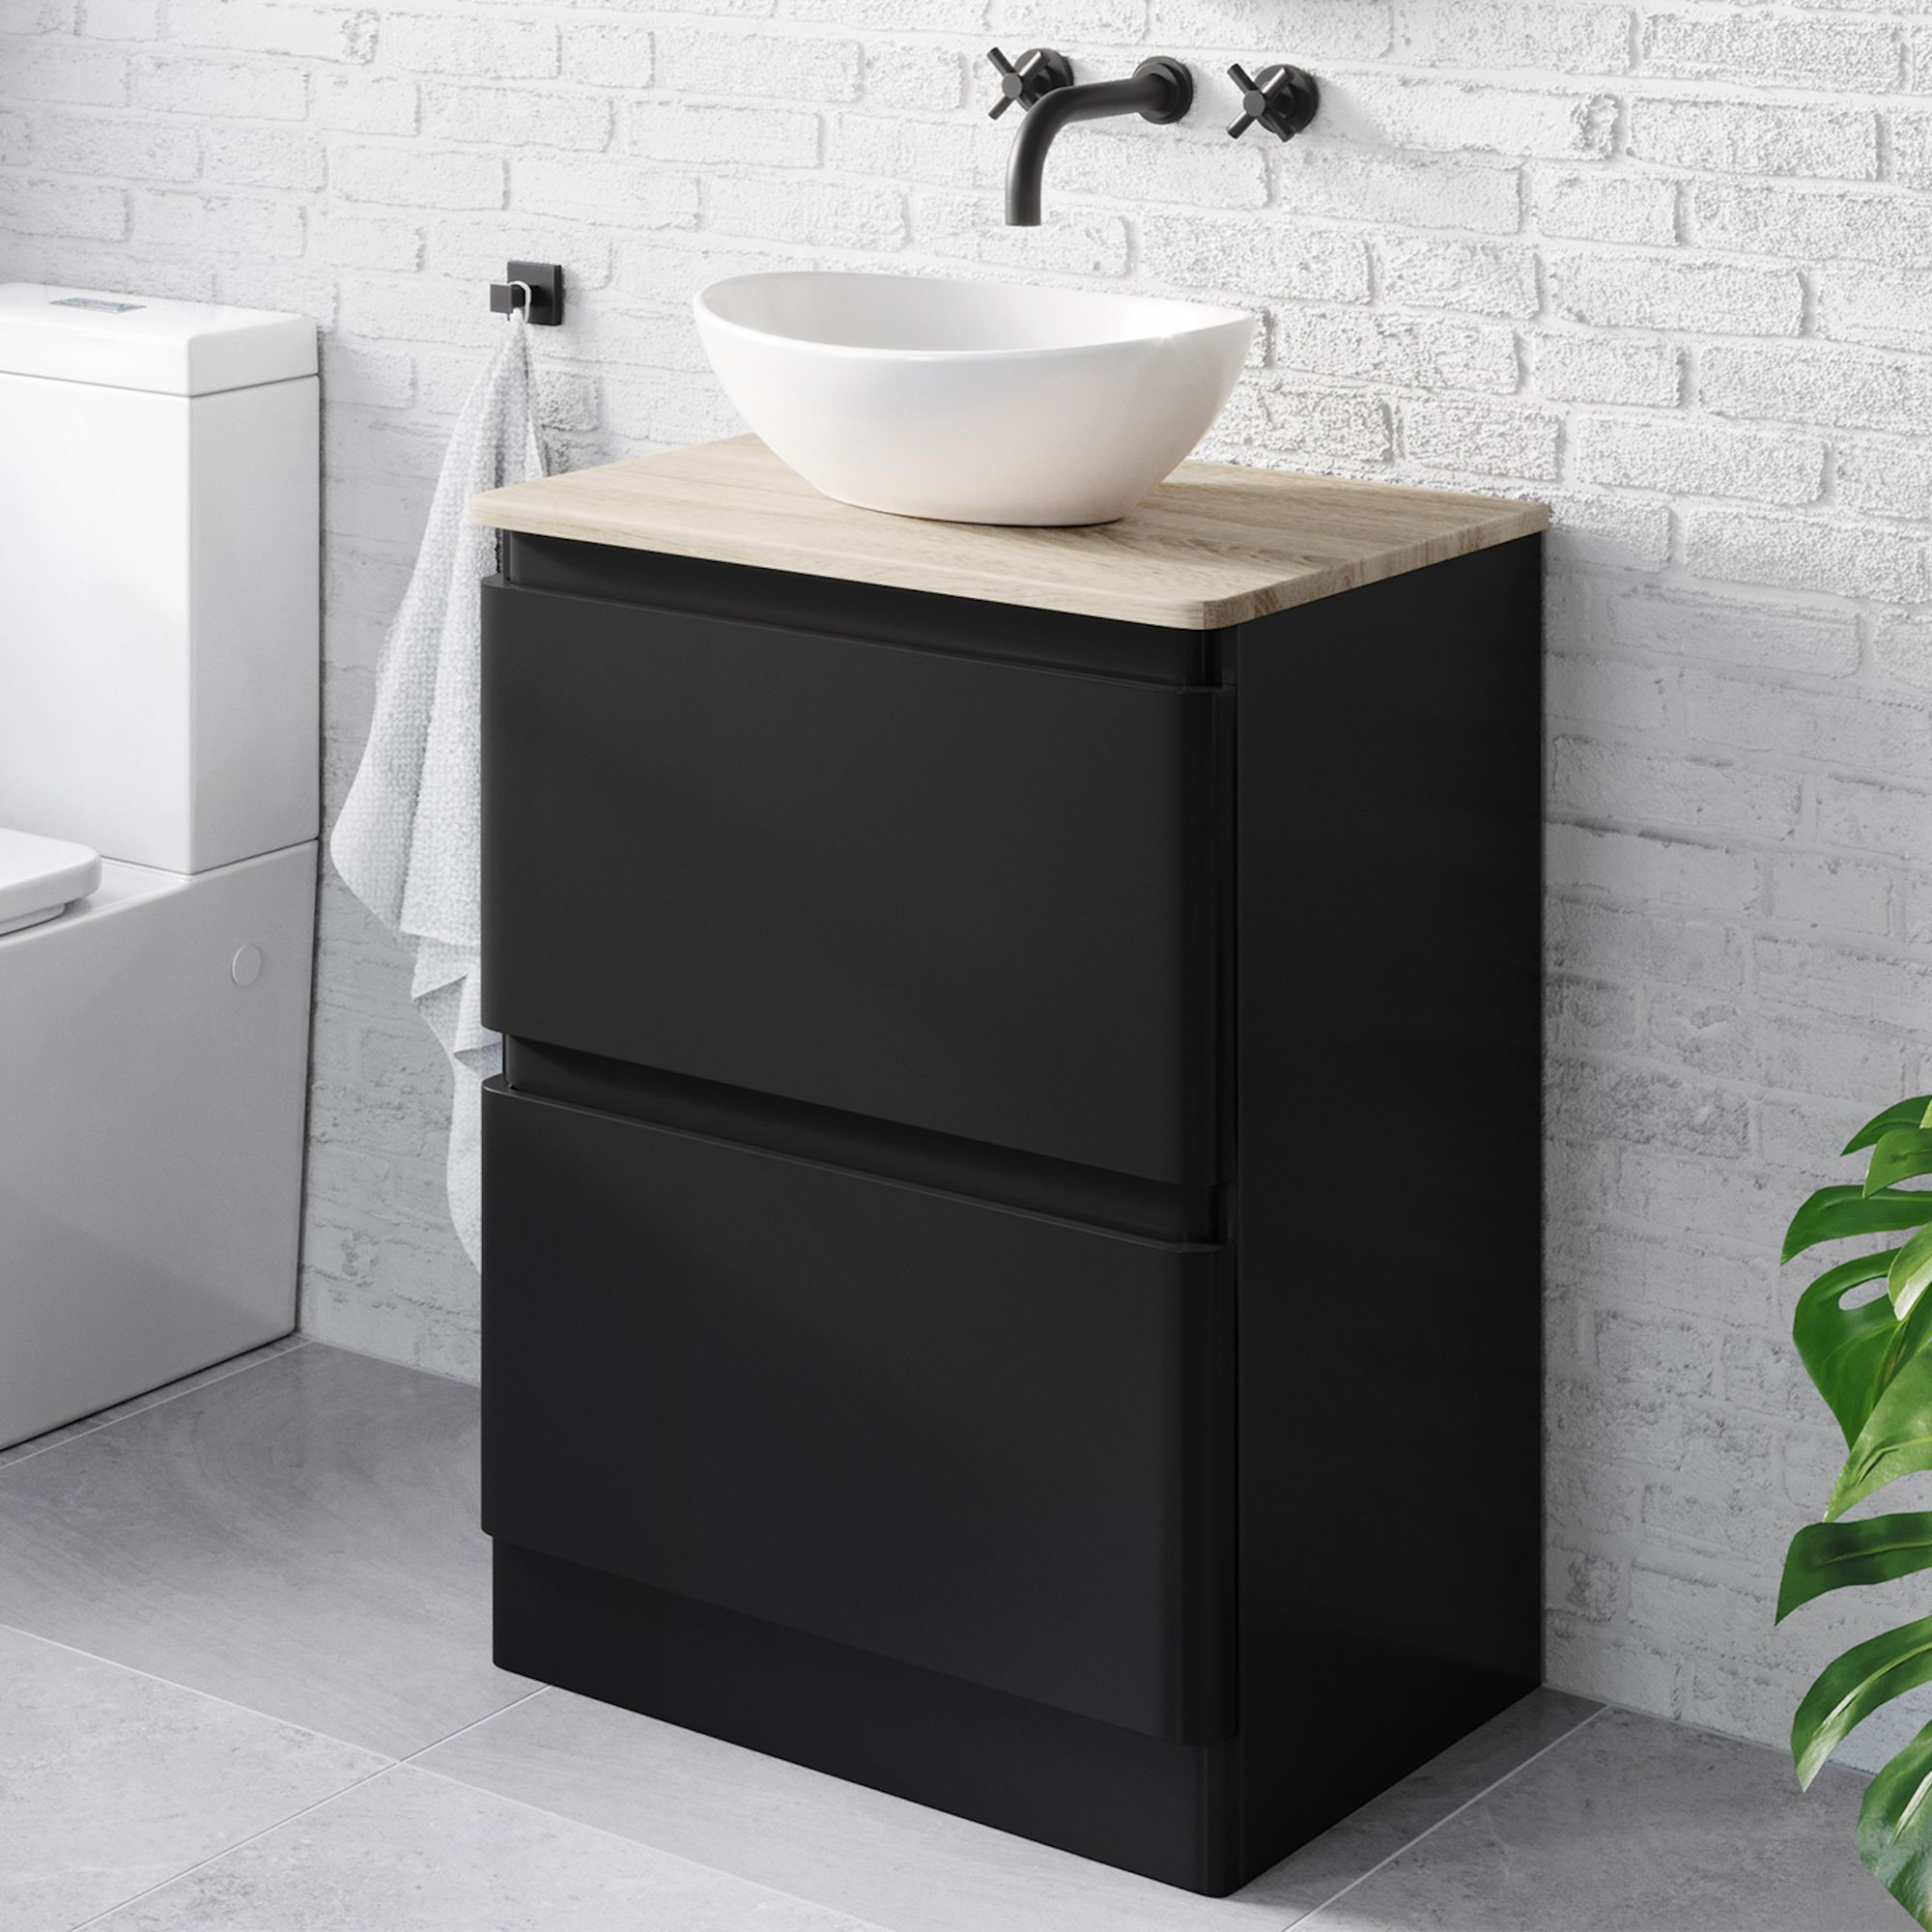 Black Vanity Unit Counter Top Sink Black Sink Vanity Soak